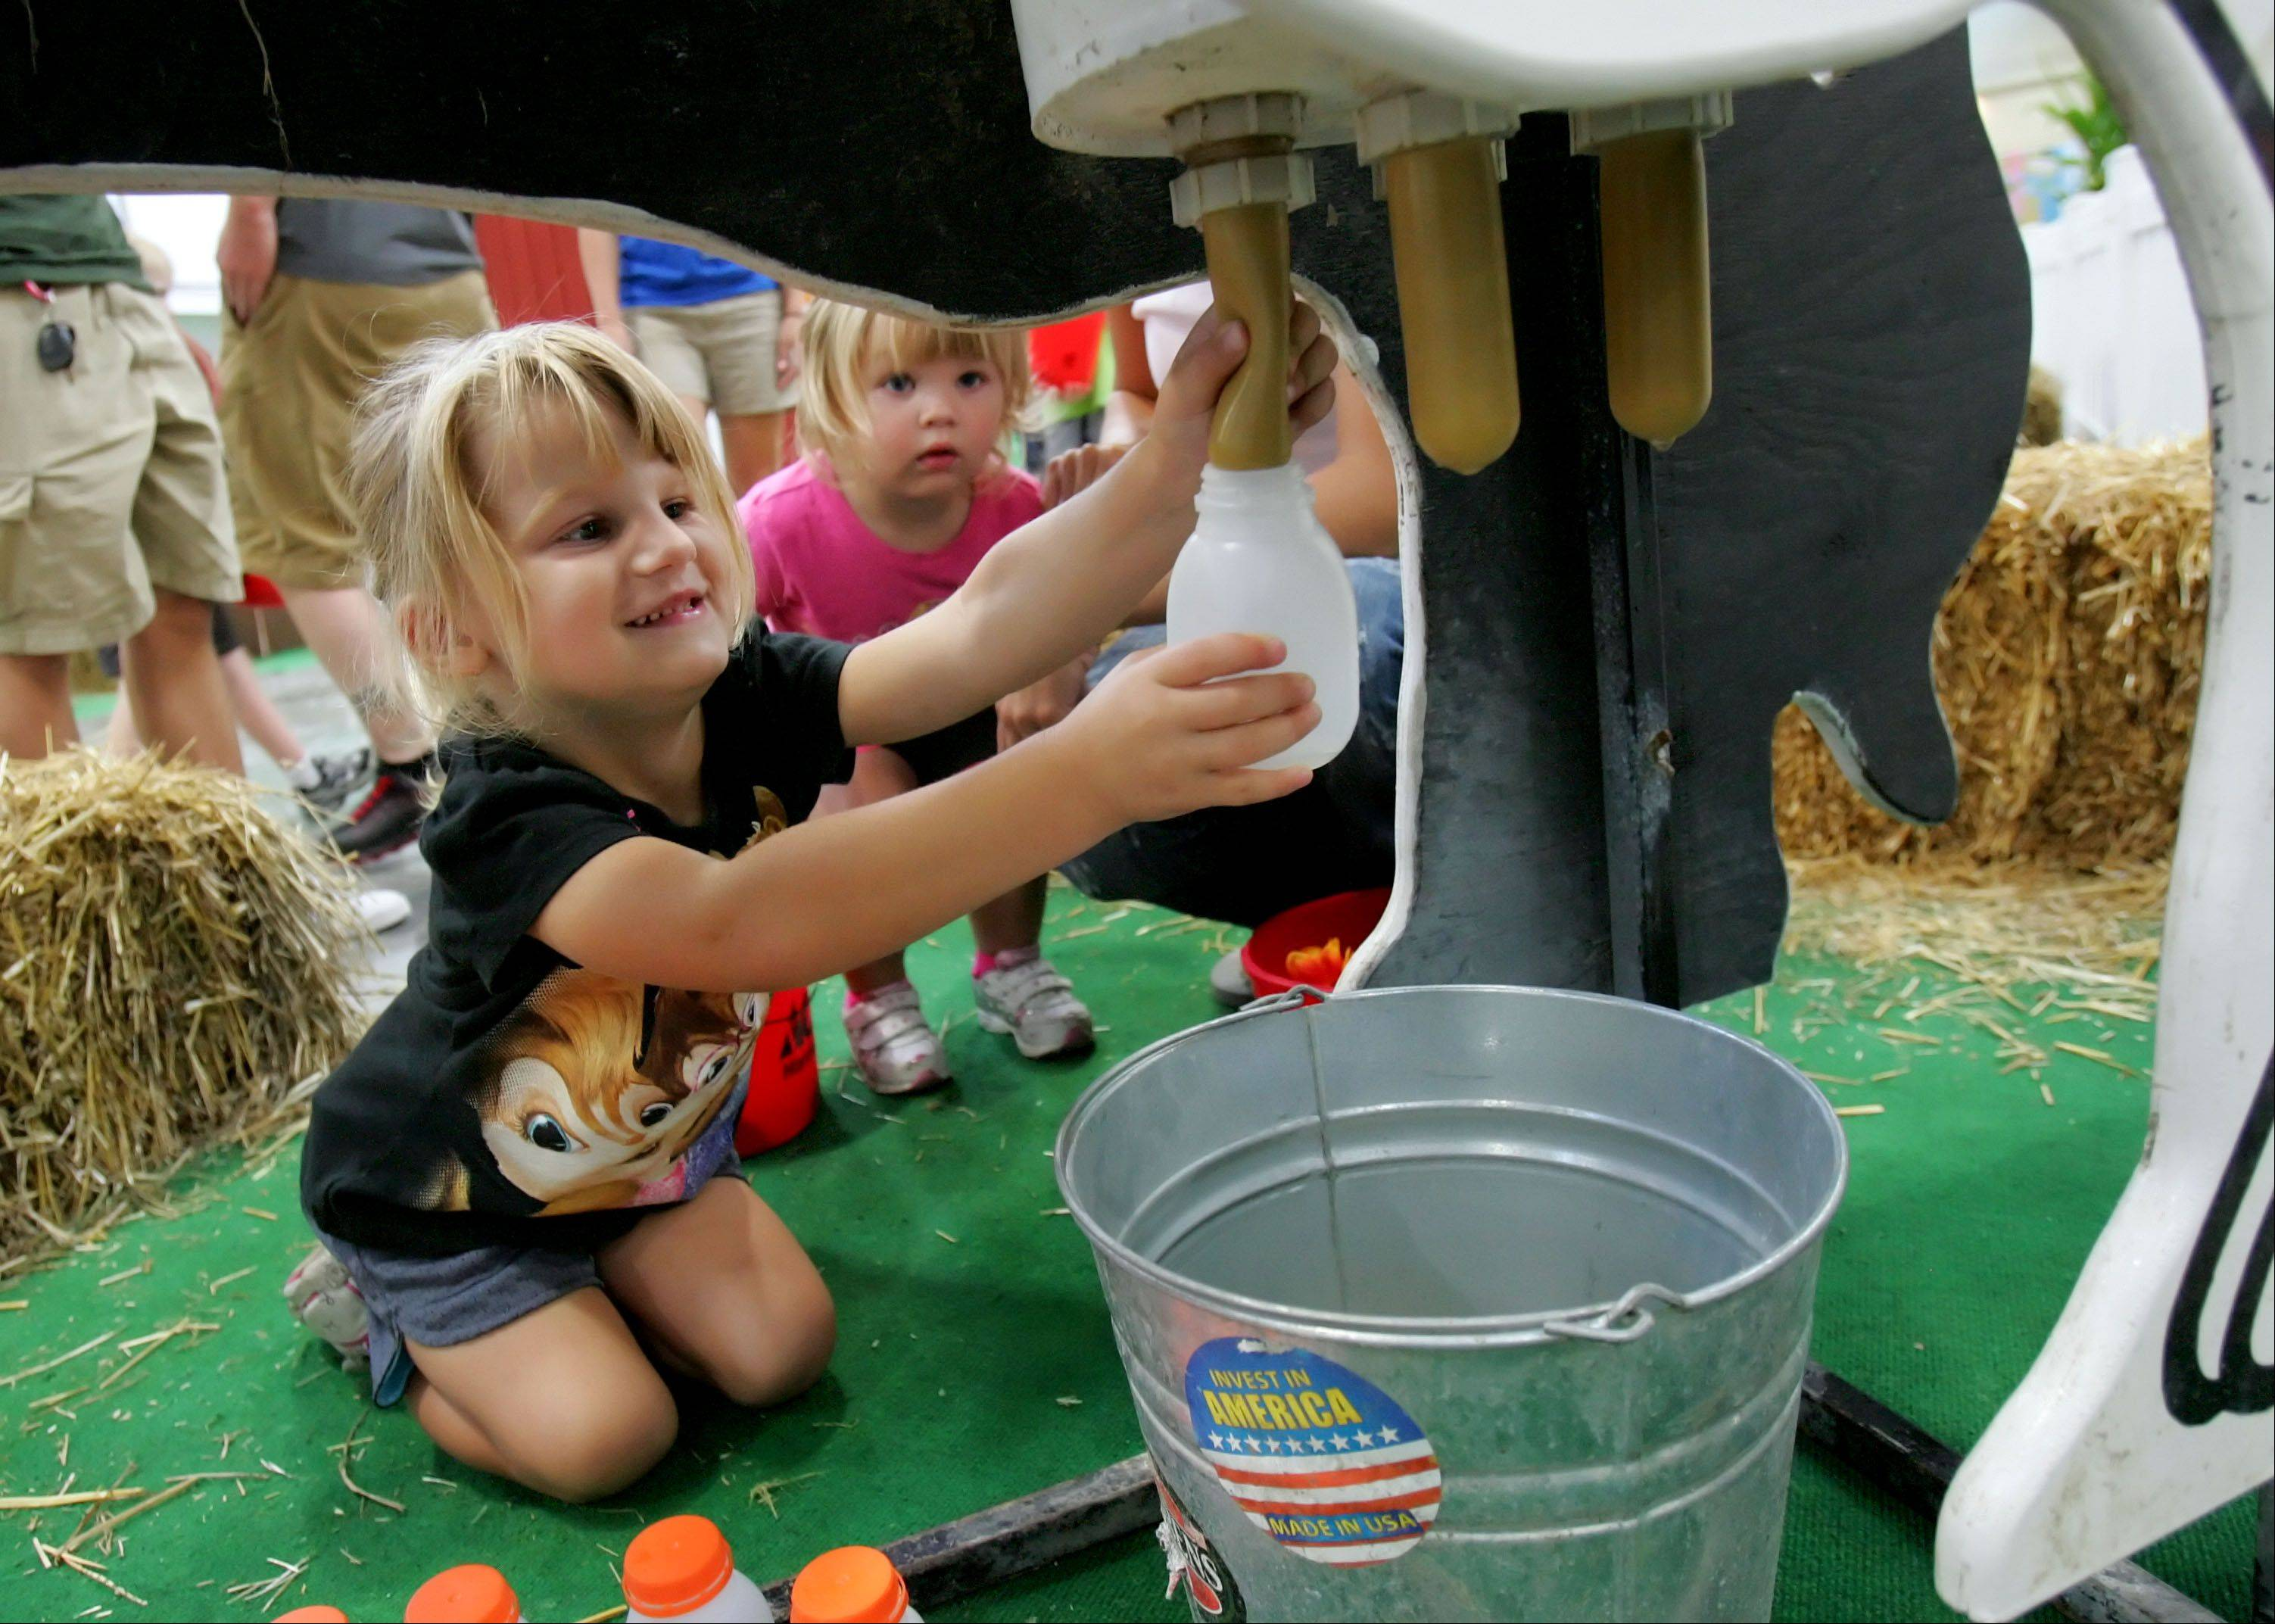 Jordyn Davis, 3, of Grayslake, left, milks a pretend cow at the Lake County Farm Bureau�s new Ag Adventure exhibit at the Lake County Fair Thursday morning in Grayslake.